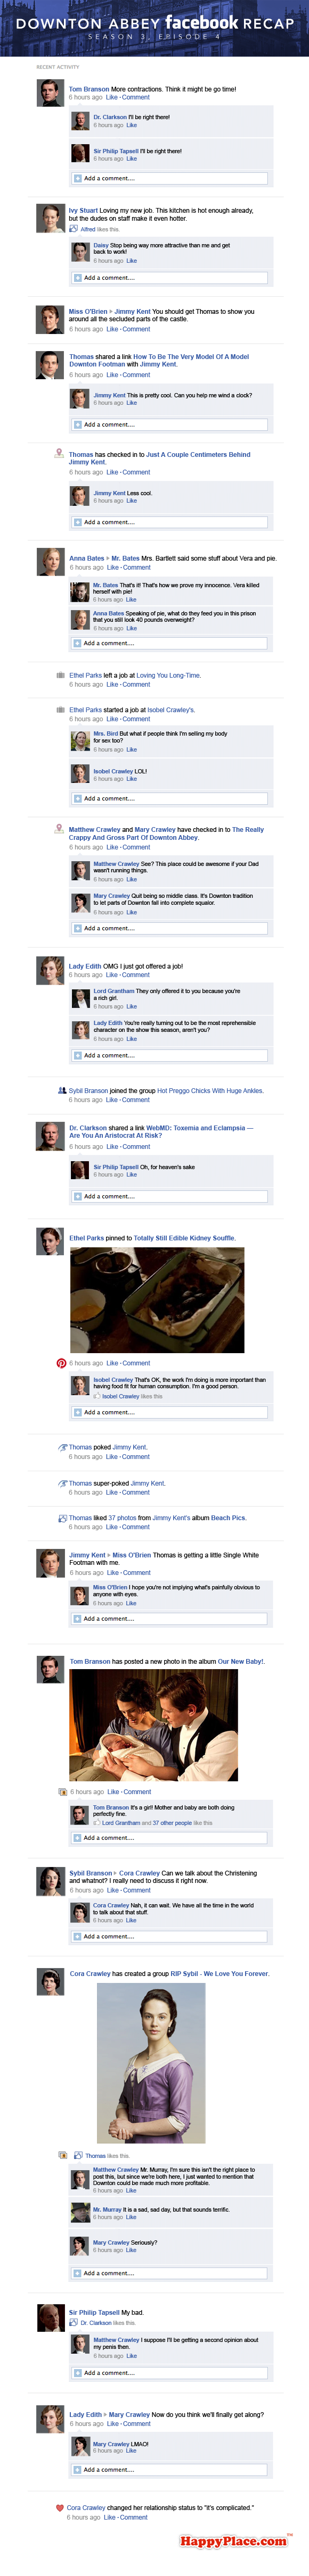 If Downton Abbey took place entirely on Facebook: Season 3, Episode 4.